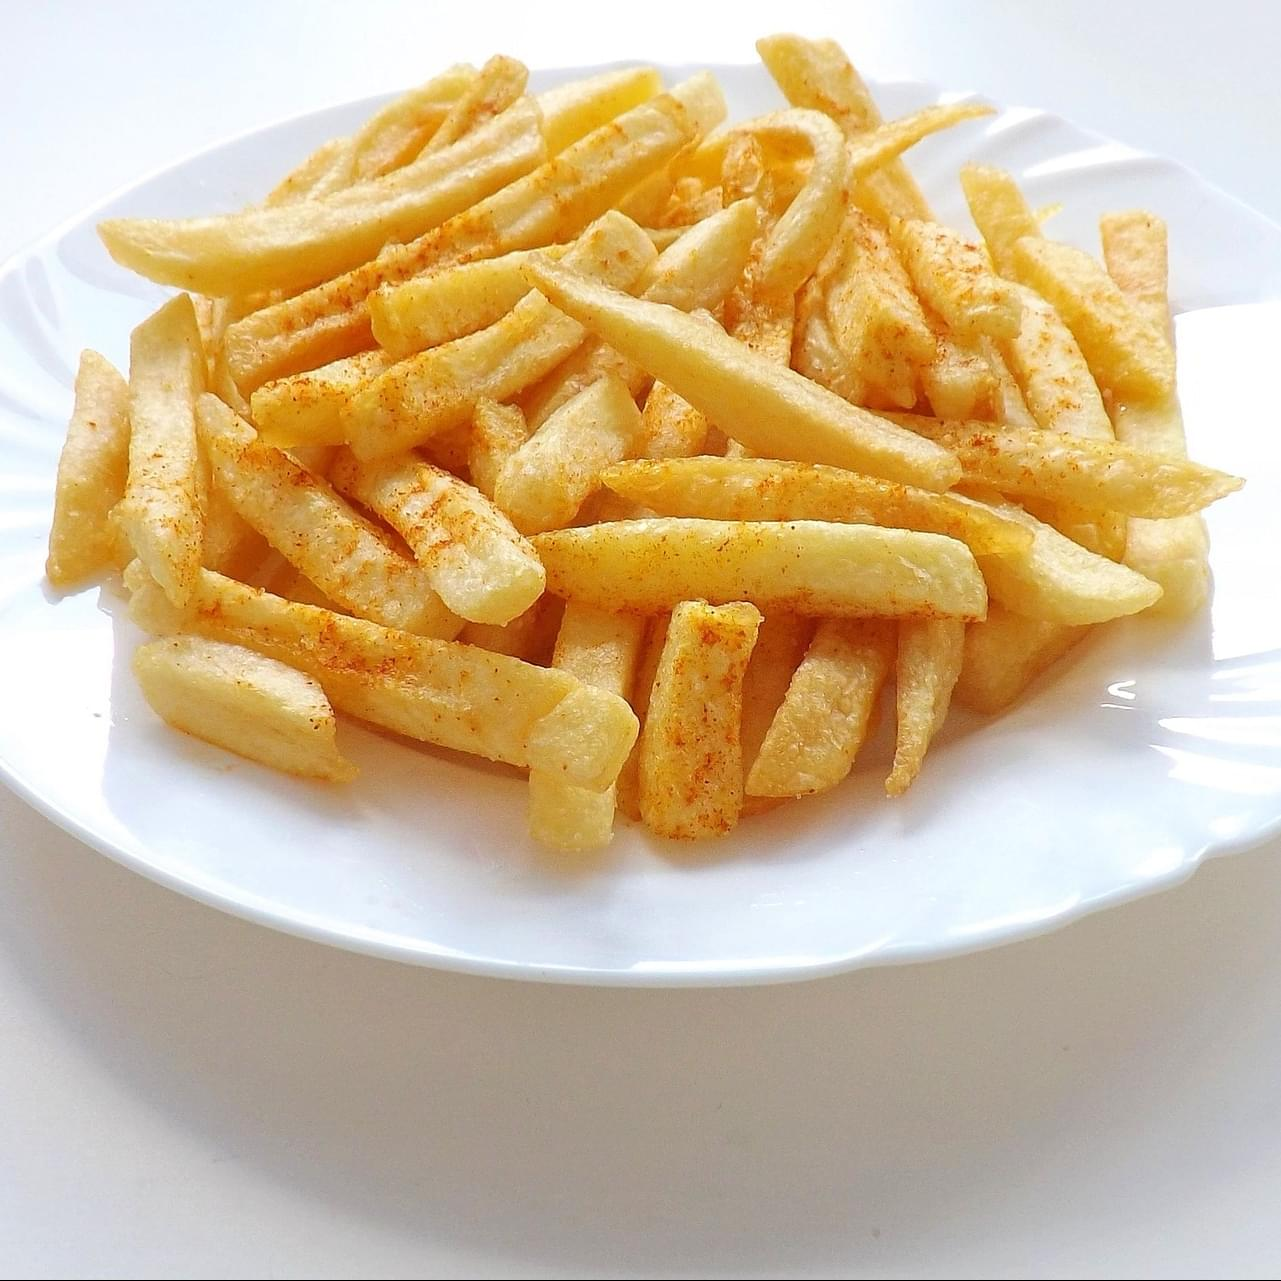 French Fry Shortage